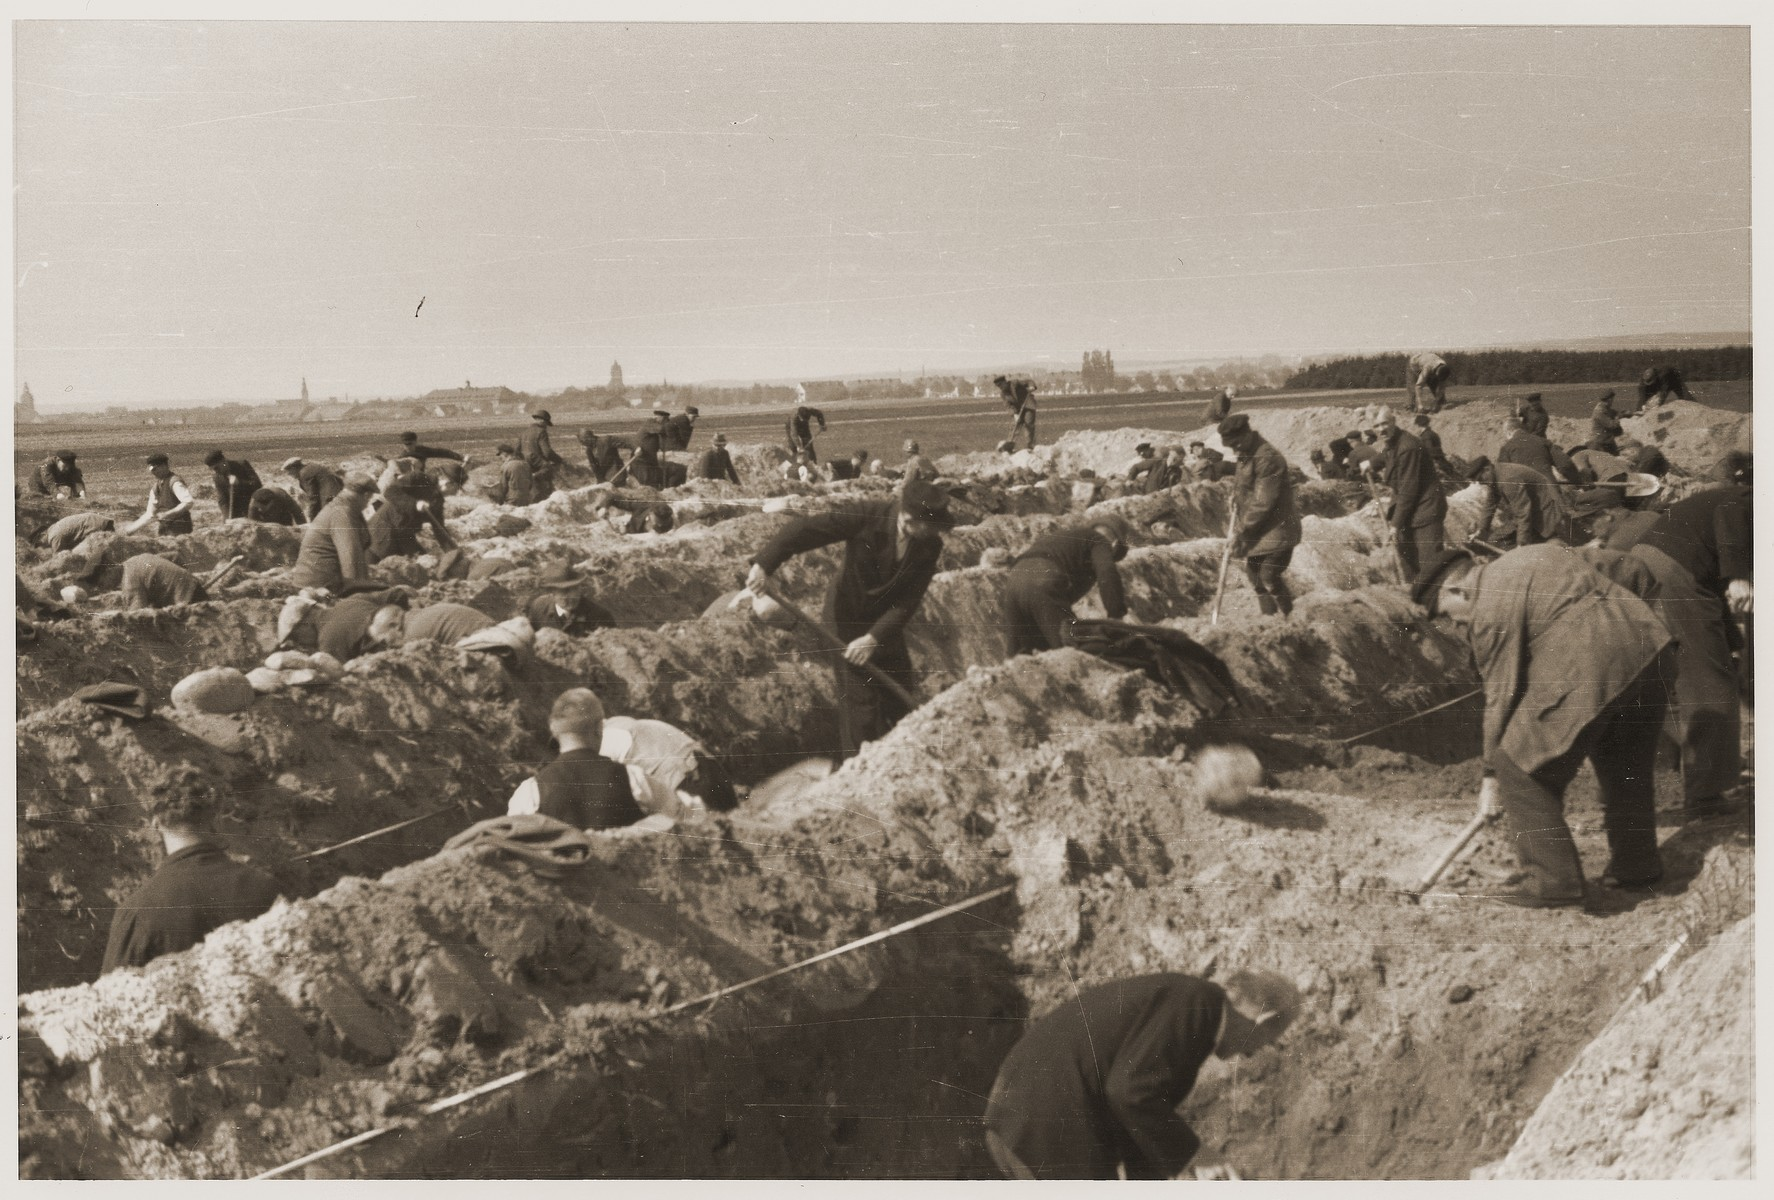 German civilians dig graves for the bodies of concentration camp prisoners killed by the SS in a barn just outside of Gardelegen.  The town of Gardelegen can be seen in the distance.